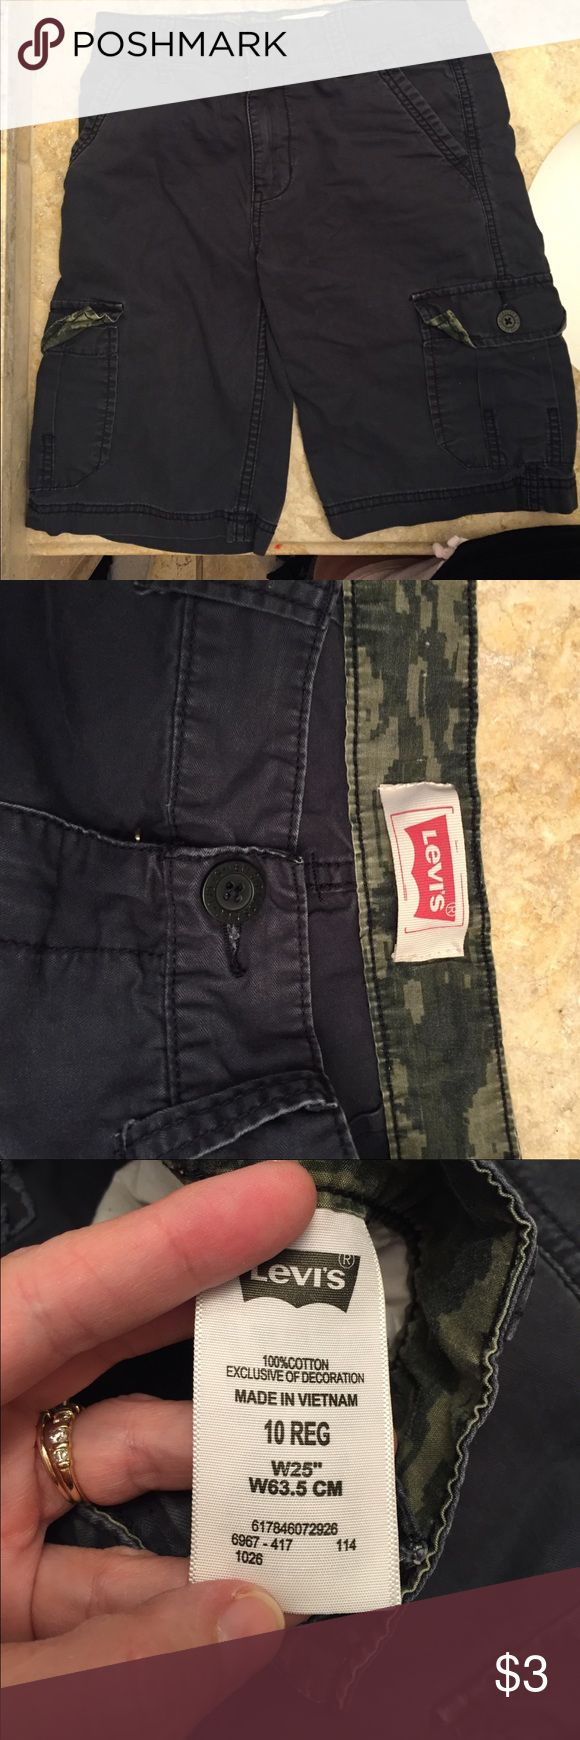 Boys Levi's dark gray cargo shorts size 10 reg These Levi's boys cargo shorts are in good condition! They are in dark gray with camo inside band however there is NO adjustable band!!! These fit true to 8-10! The back two pockets are missing buttons (see pics) and low price reflects it. You can easily sew those on or leave off for your boy to fill up with whatever he finds on his adventures!!! 🐍🐢🐸 they were well taken care of..smoke free and no pet hair! Levi's Bottoms Shorts